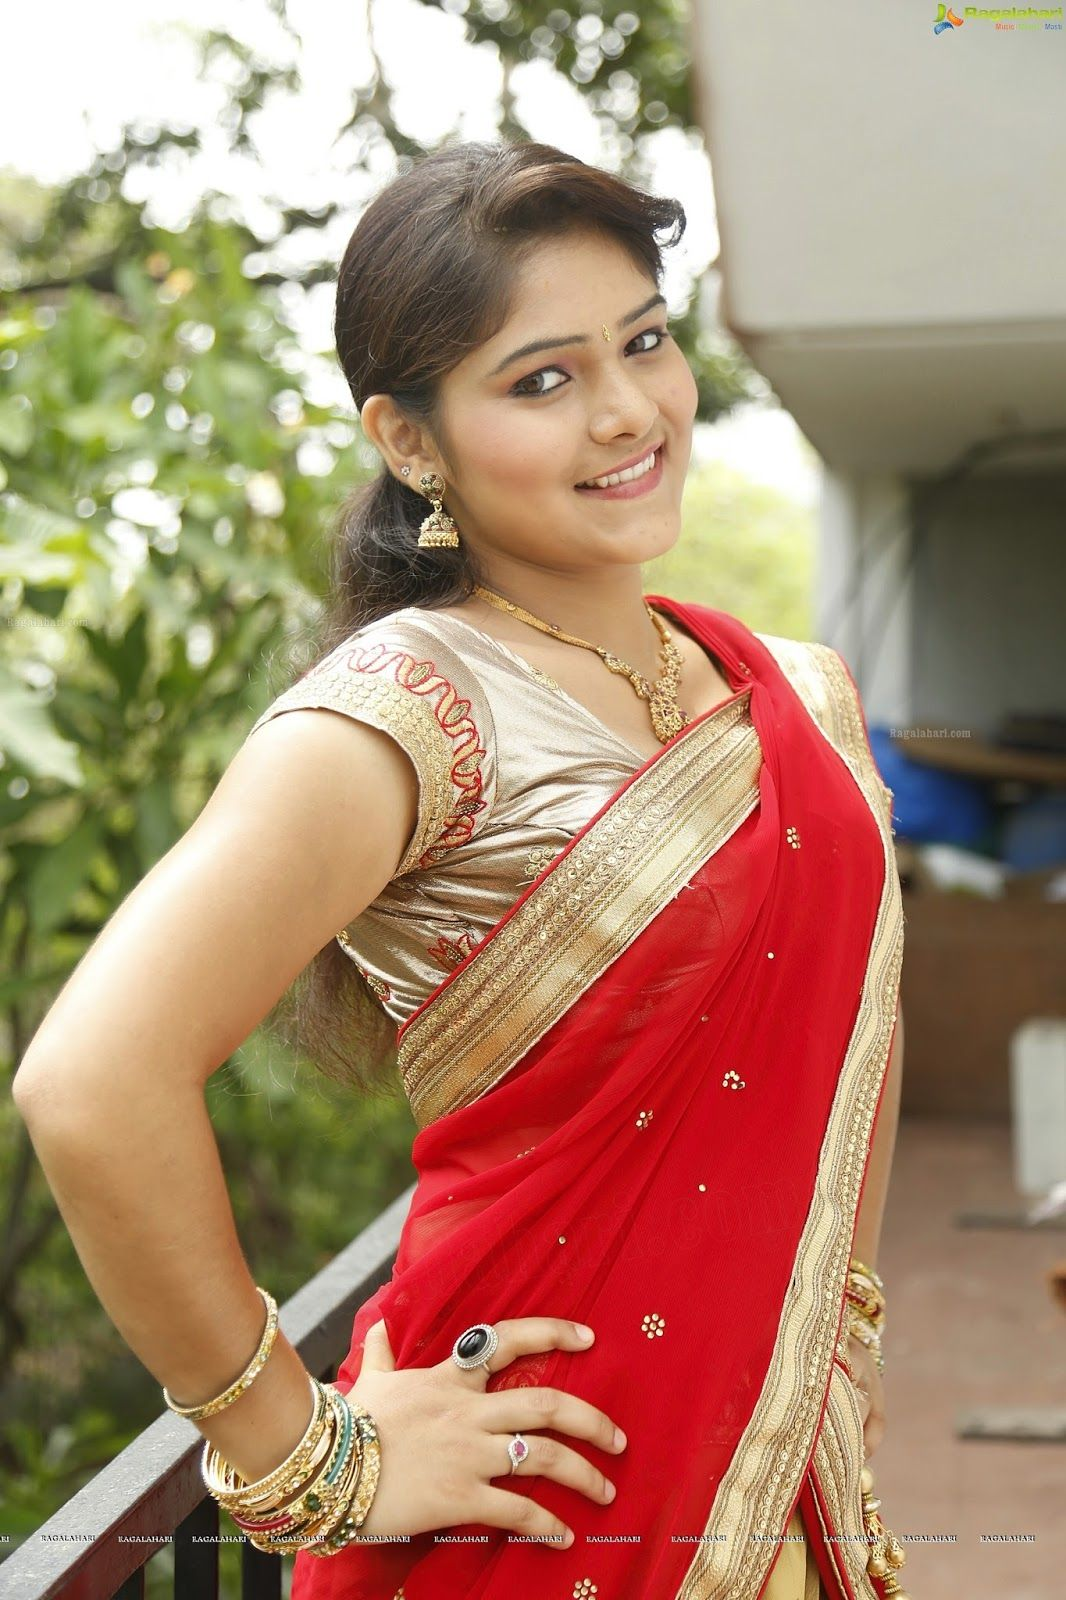 Belly button piercing plus size  actress largest navelcleavagehipwaist photo collections  haritha